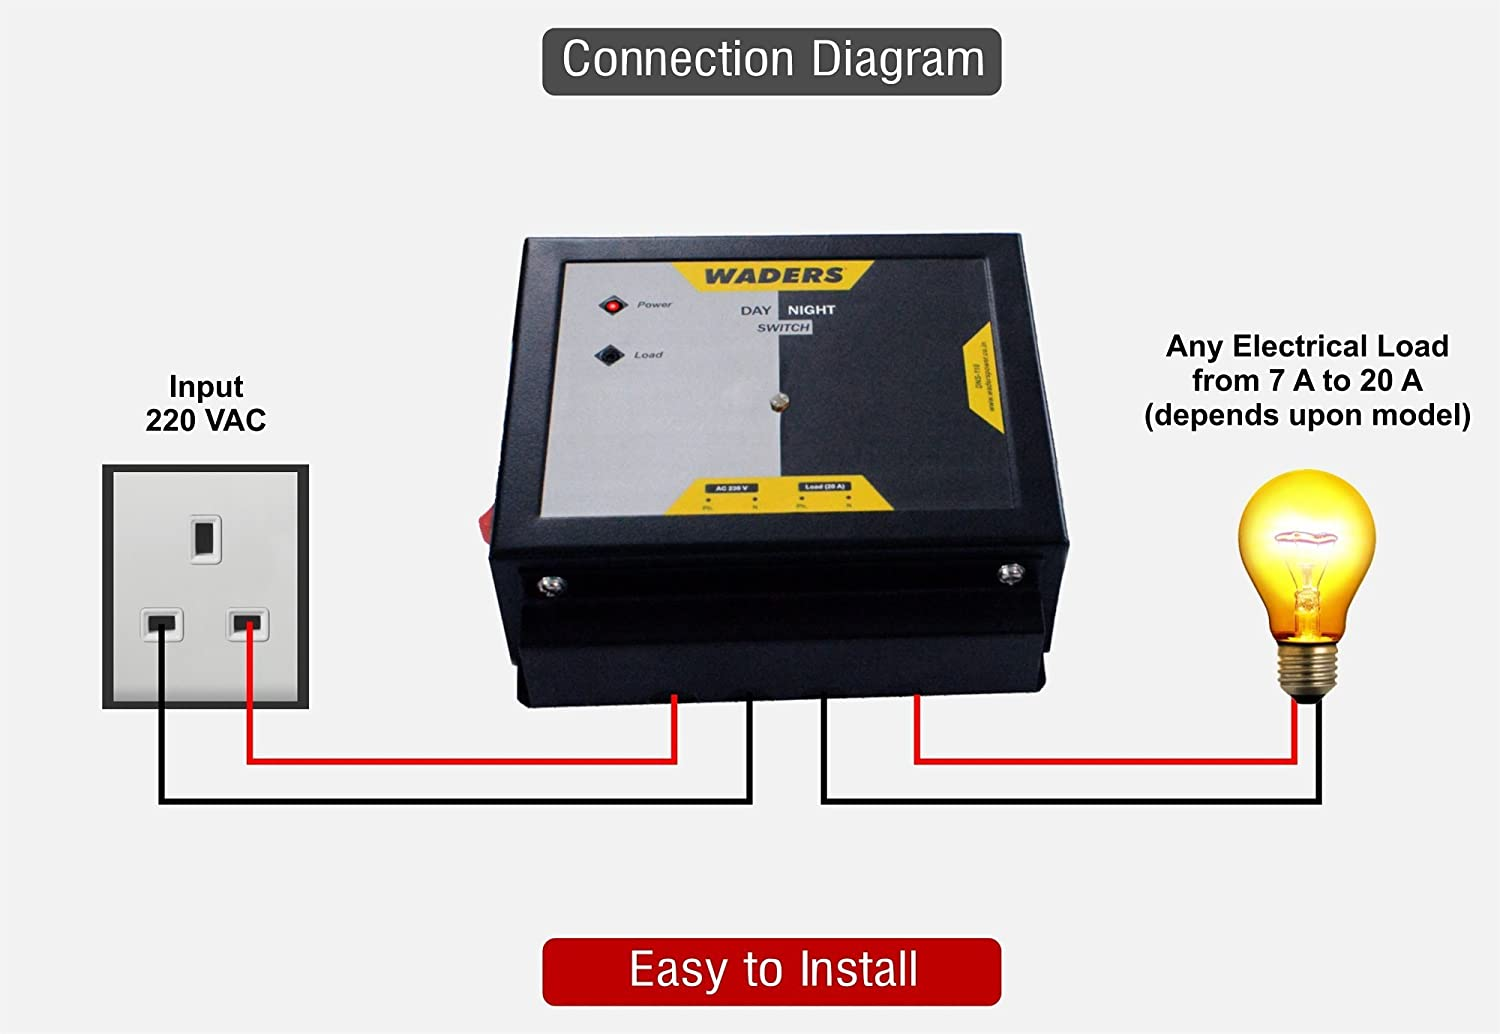 Waders Light Sensor Ldr Based Automatic Day Night Switch For Home Sl 3000 Ul Wiring Diagram Automation Improvement